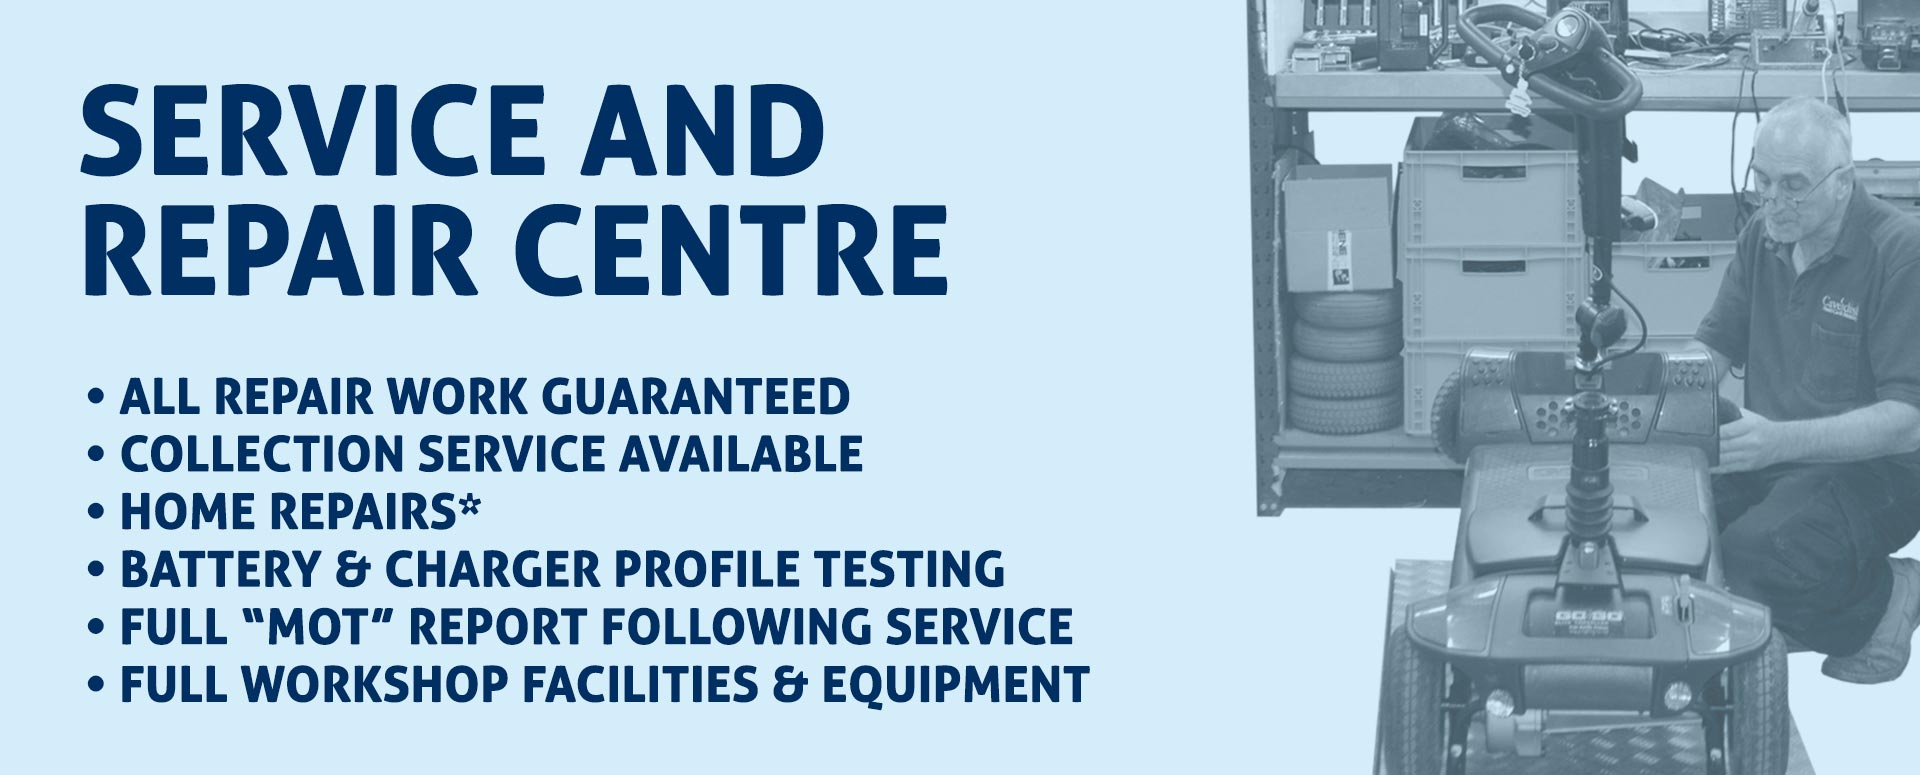 Service and Repair Centre. Collection service available.